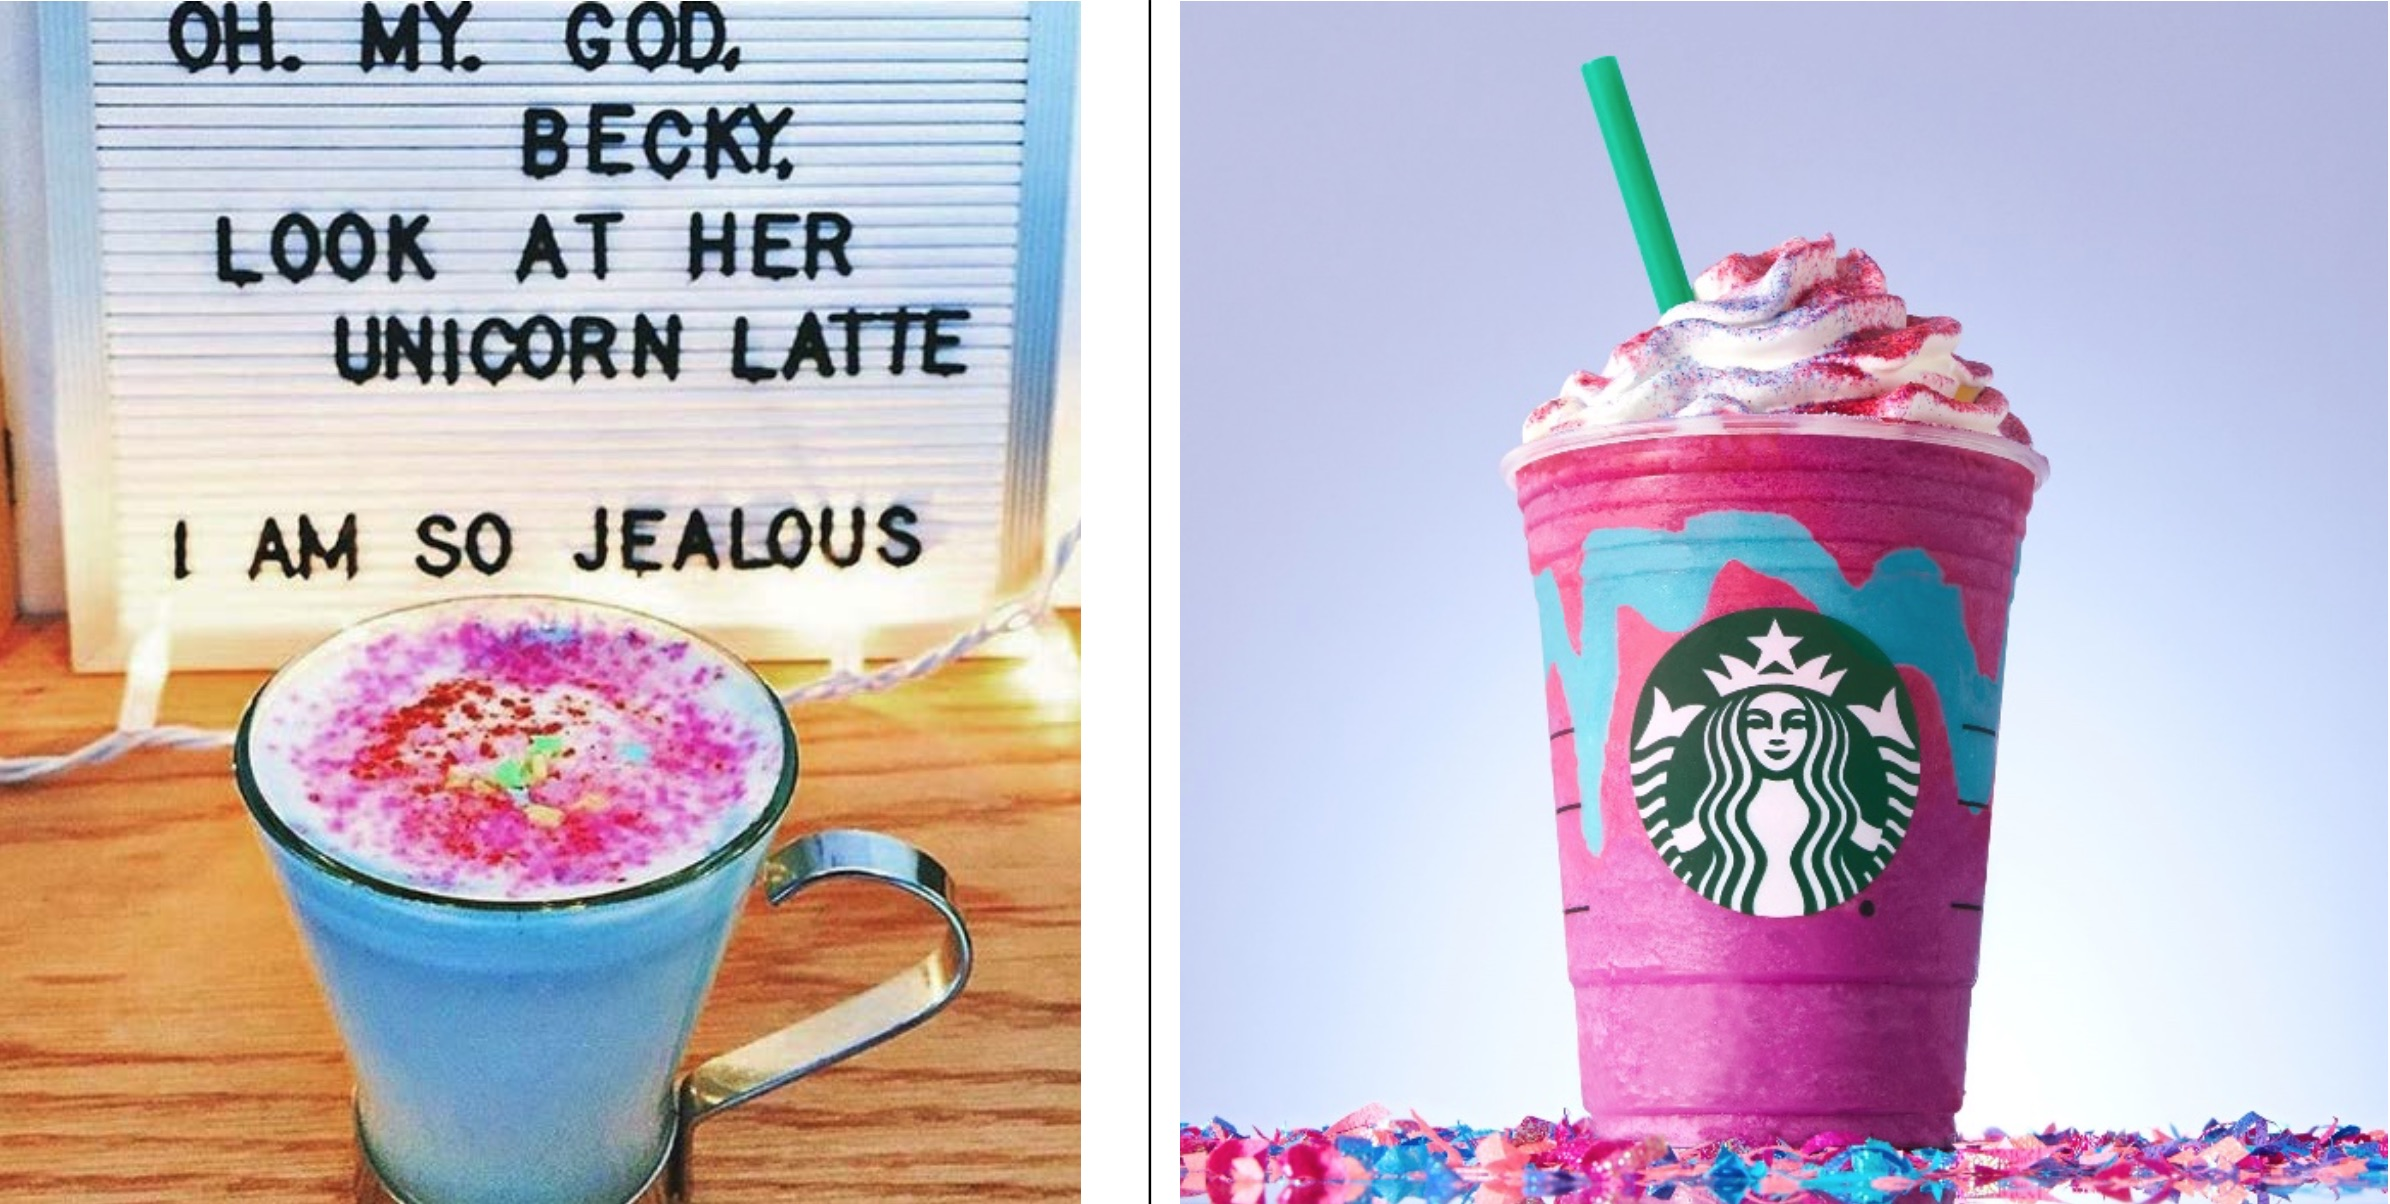 Brooklyn Café Accuses Starbucks Of Copying 'Unicorn' Beverage Name